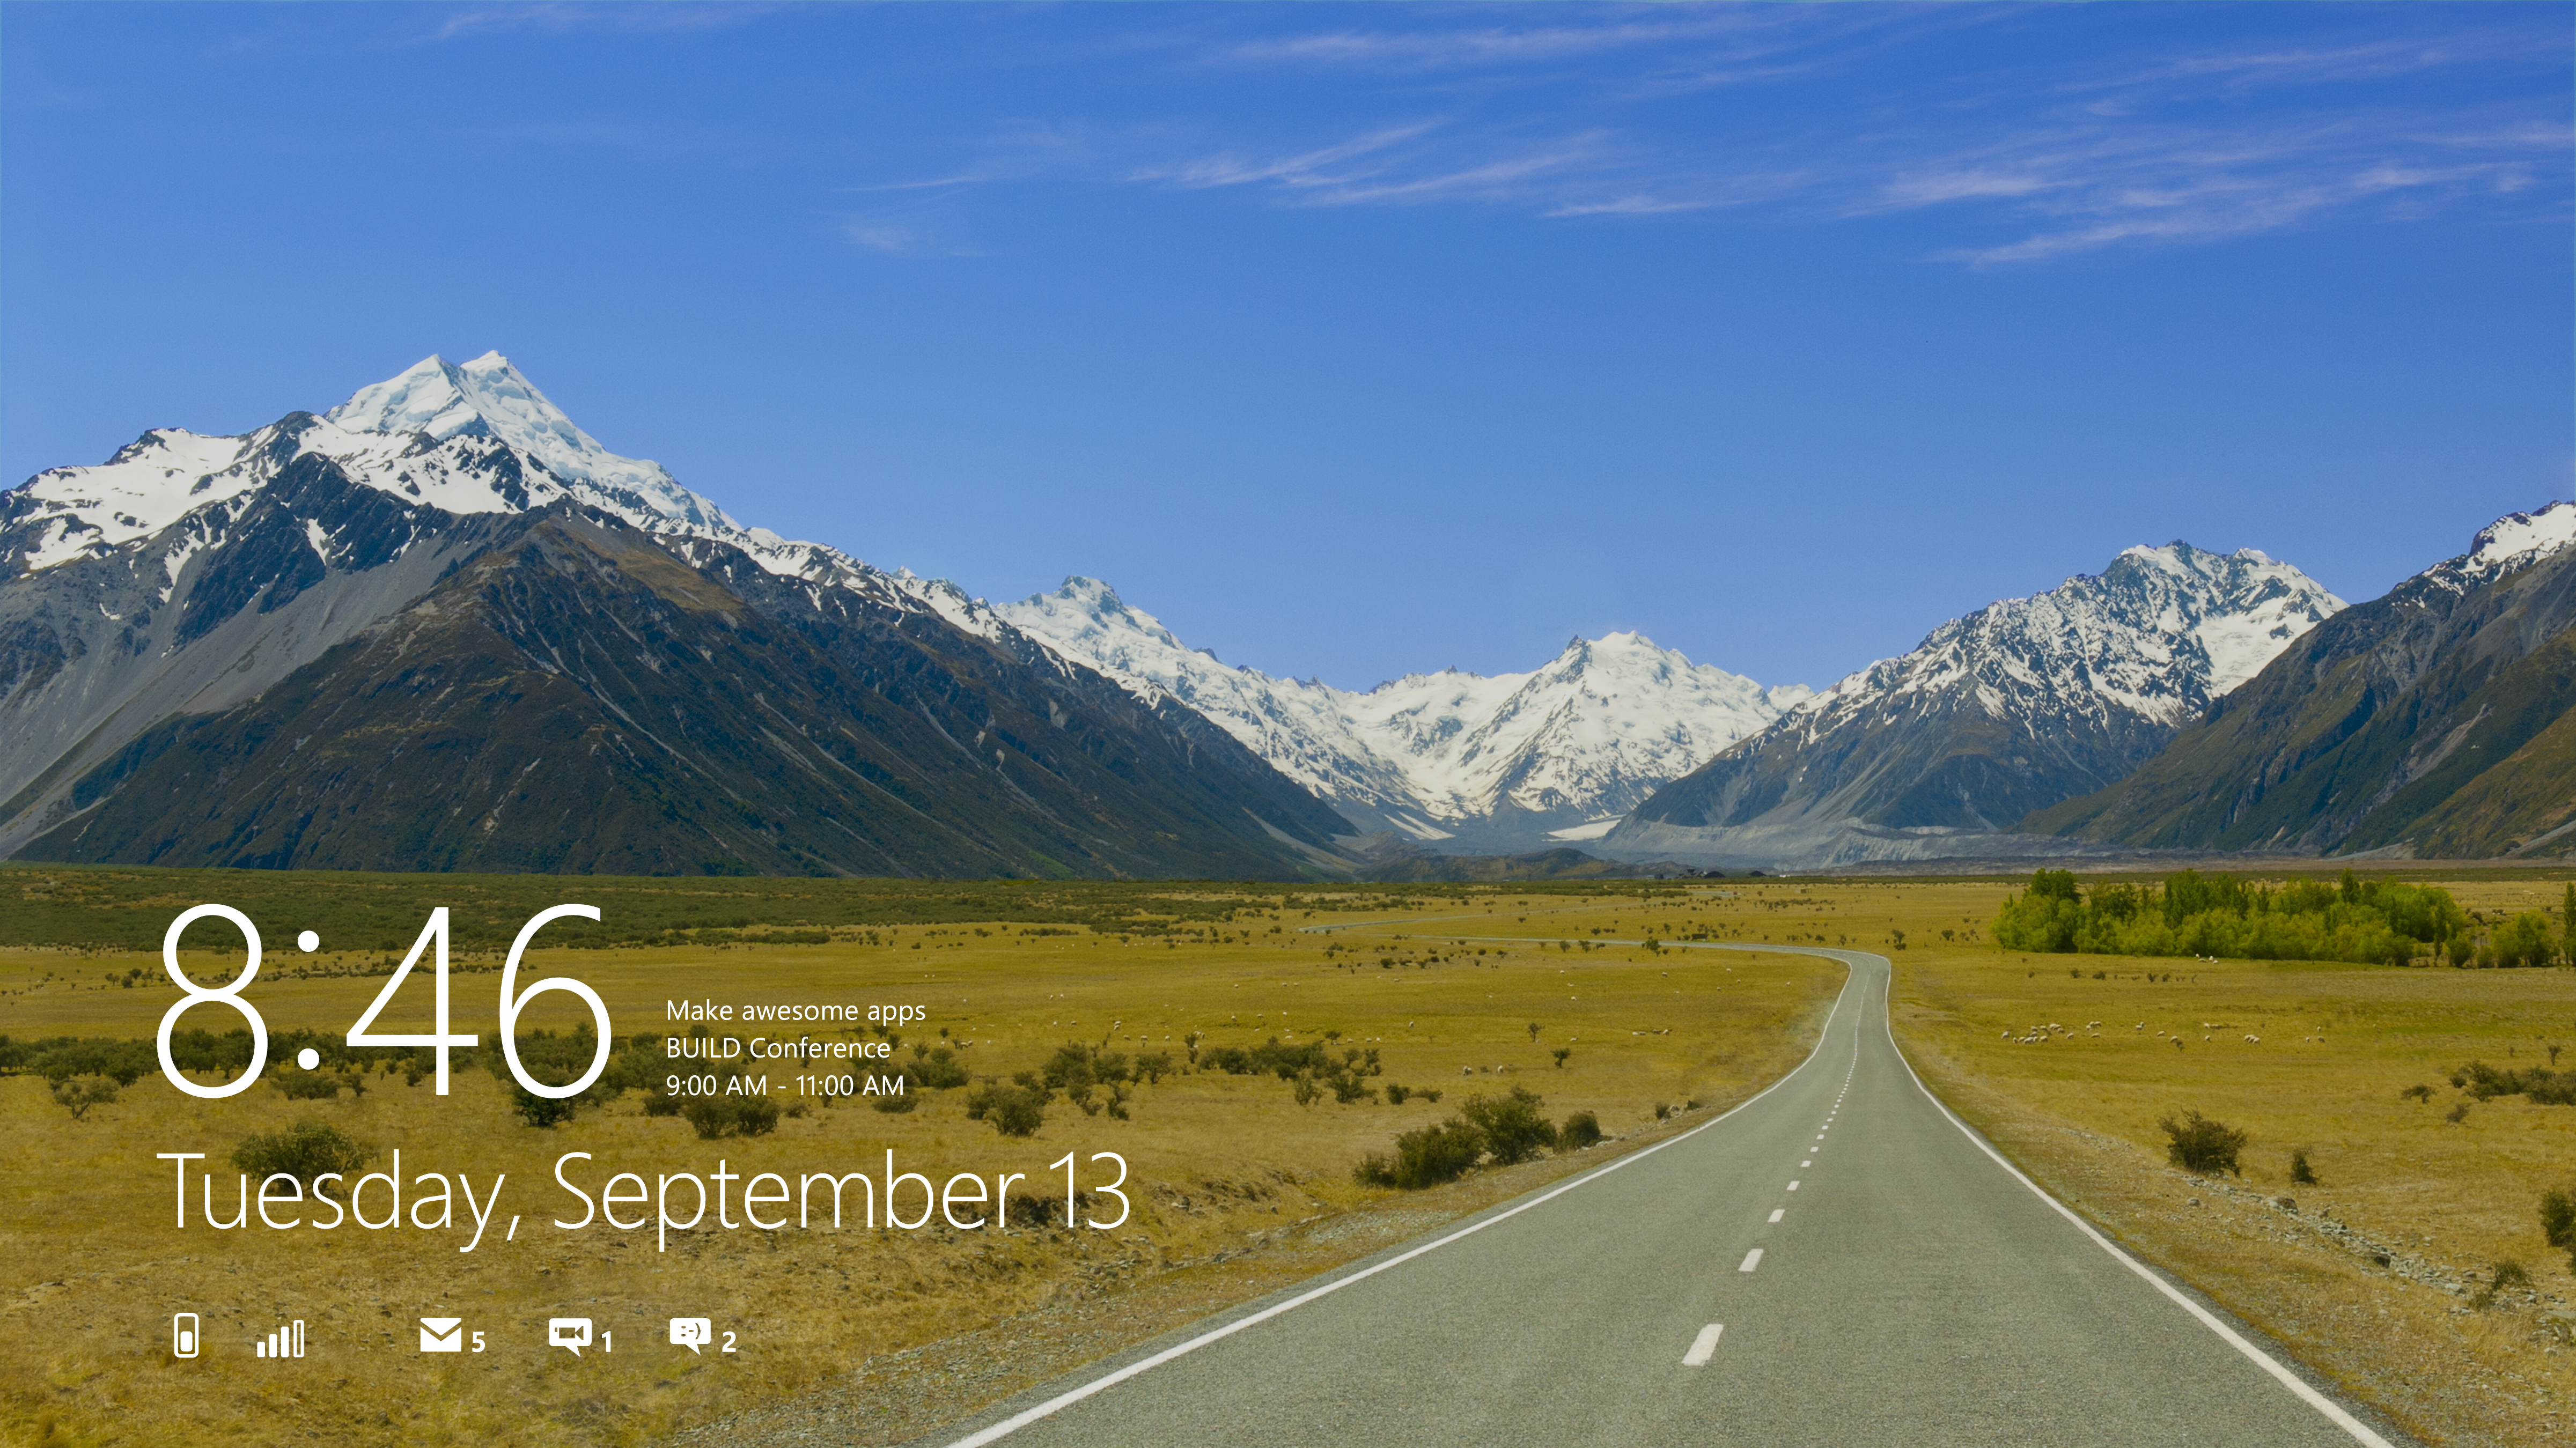 Hands on with Windows 8 A PC operating system for the tablet age 4802x2700